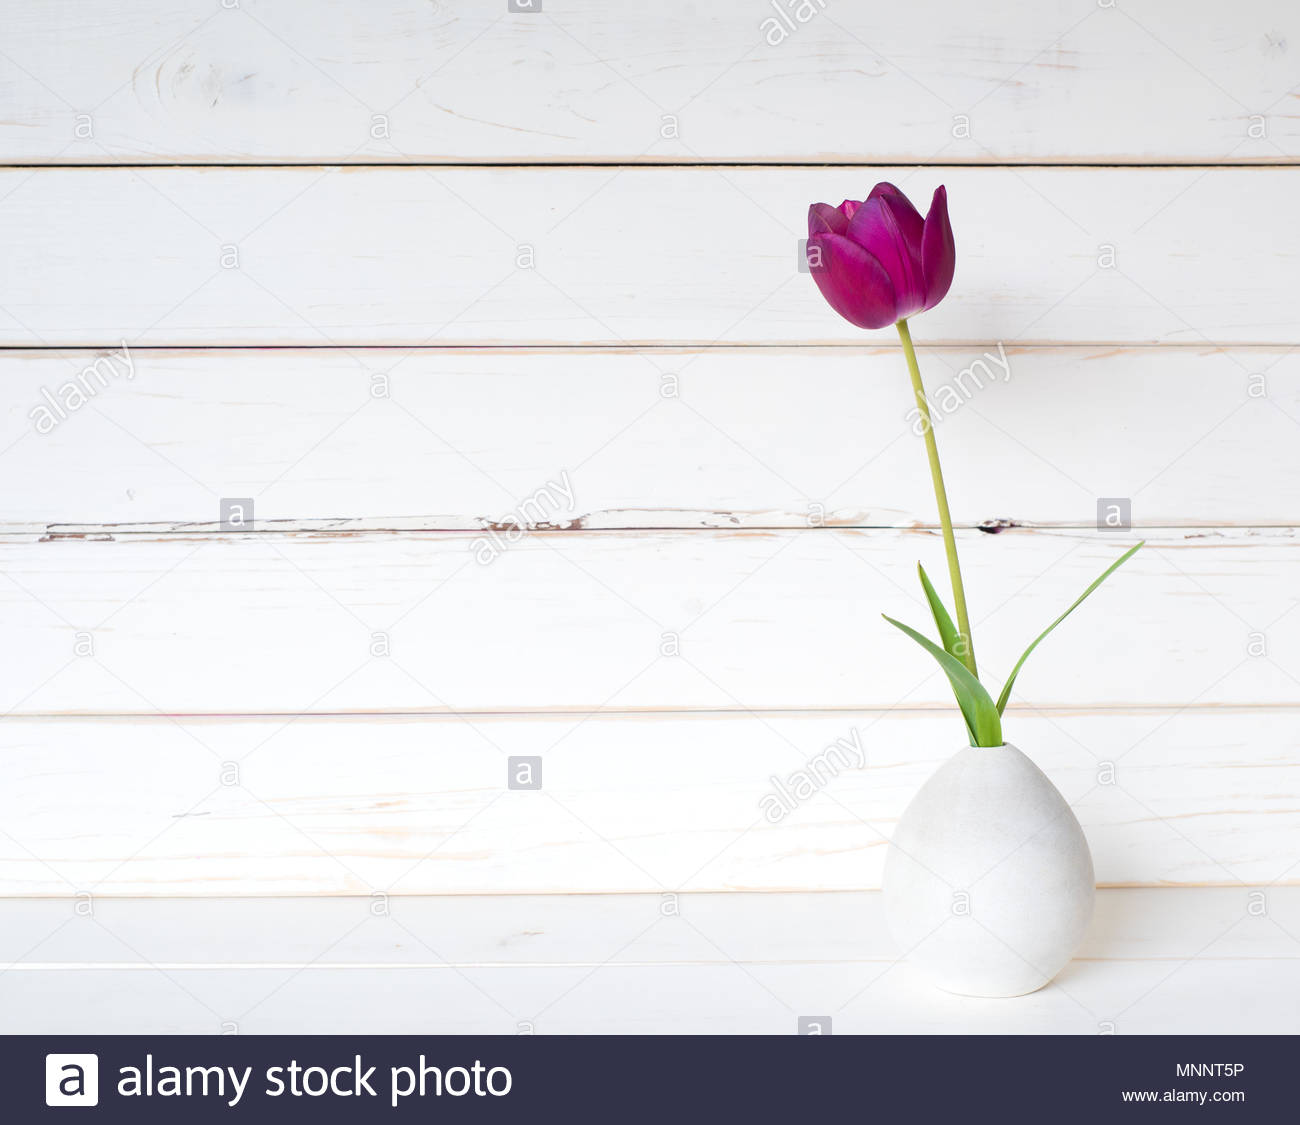 One Purple Spring Tulip In A Small Modern Light Gray Vase On White Table And Against Distressed Shiplap Wood Board Background With Extra Room Or Spa